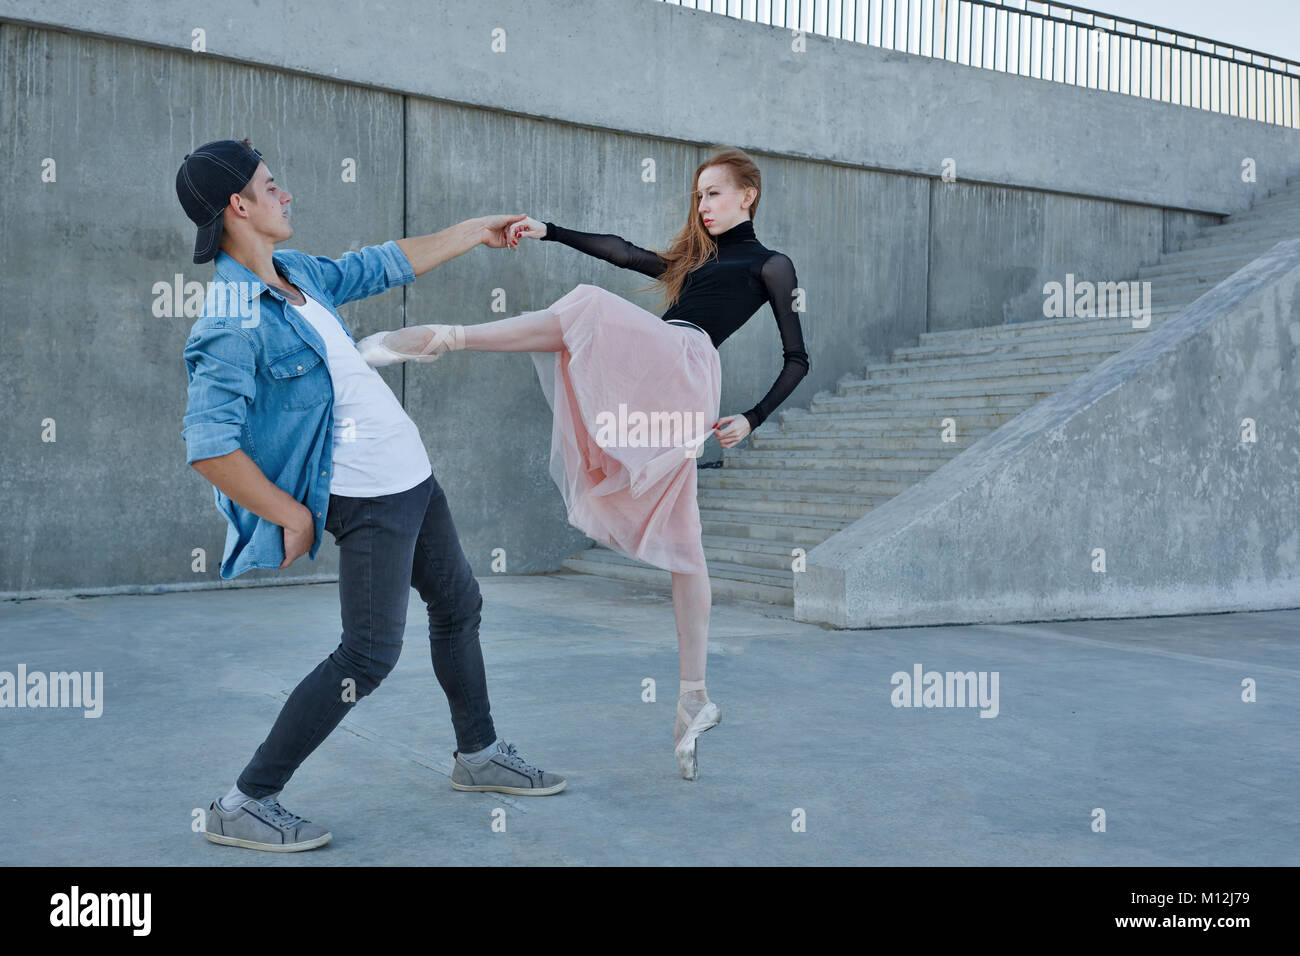 A slender ballerina dances with a modern dancer. Date of lovers. Performance in the streets of the city. - Stock Image